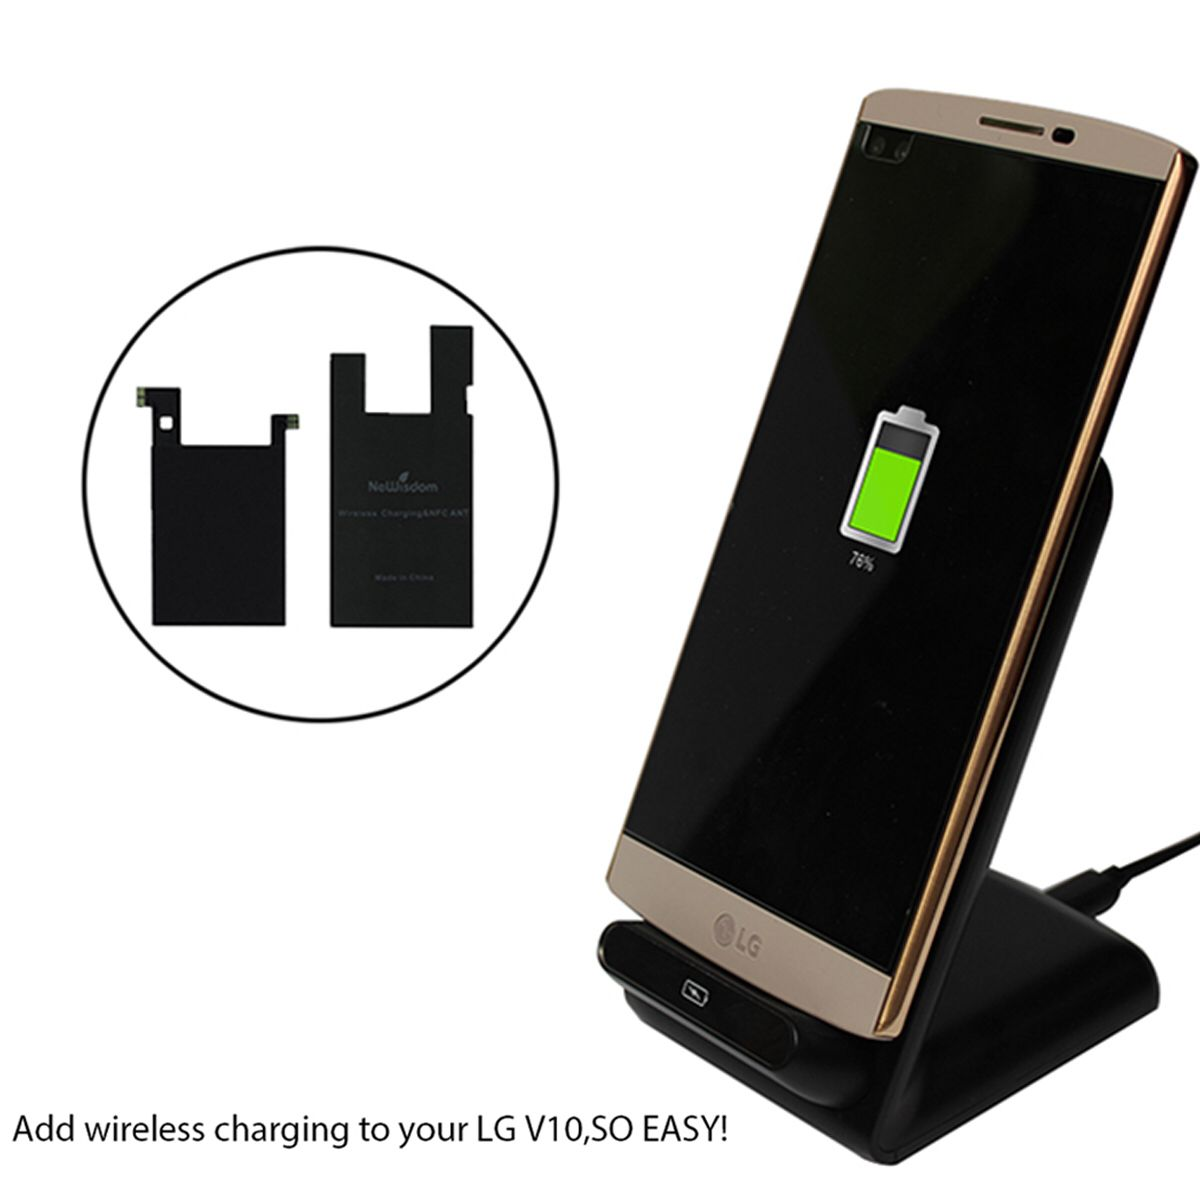 Add Wireless Charging To Your LG V With NeWisdom V Qi Sticker - Clever magnetic wall clock charges phone wirelessly